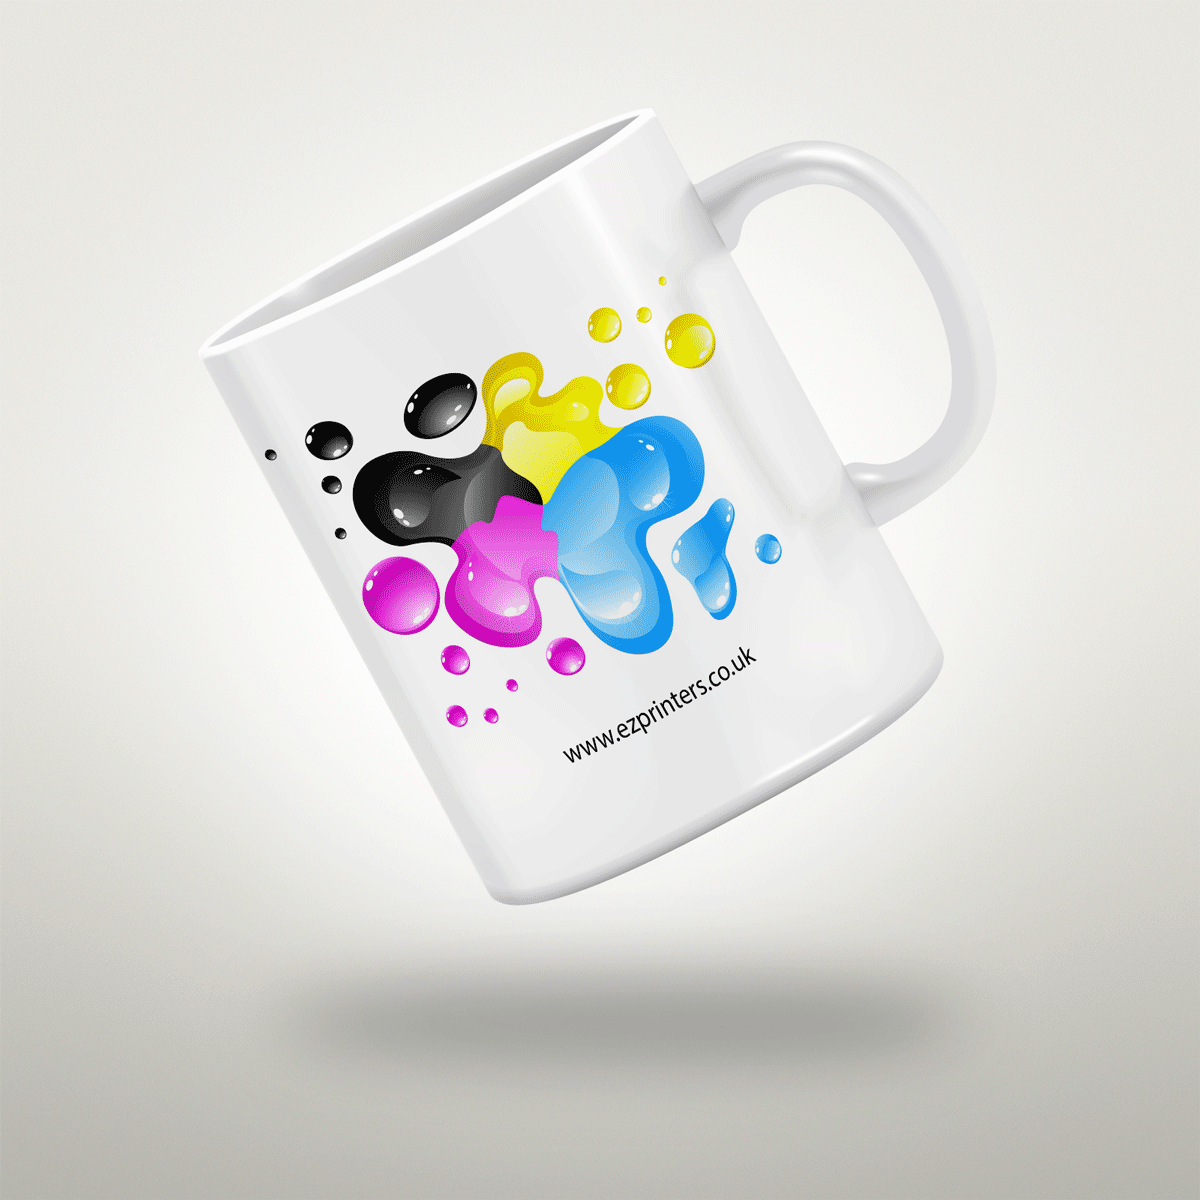 instant print cheap brilliant white gloss cambridge full colour 11oz mugs london production printing shop near me